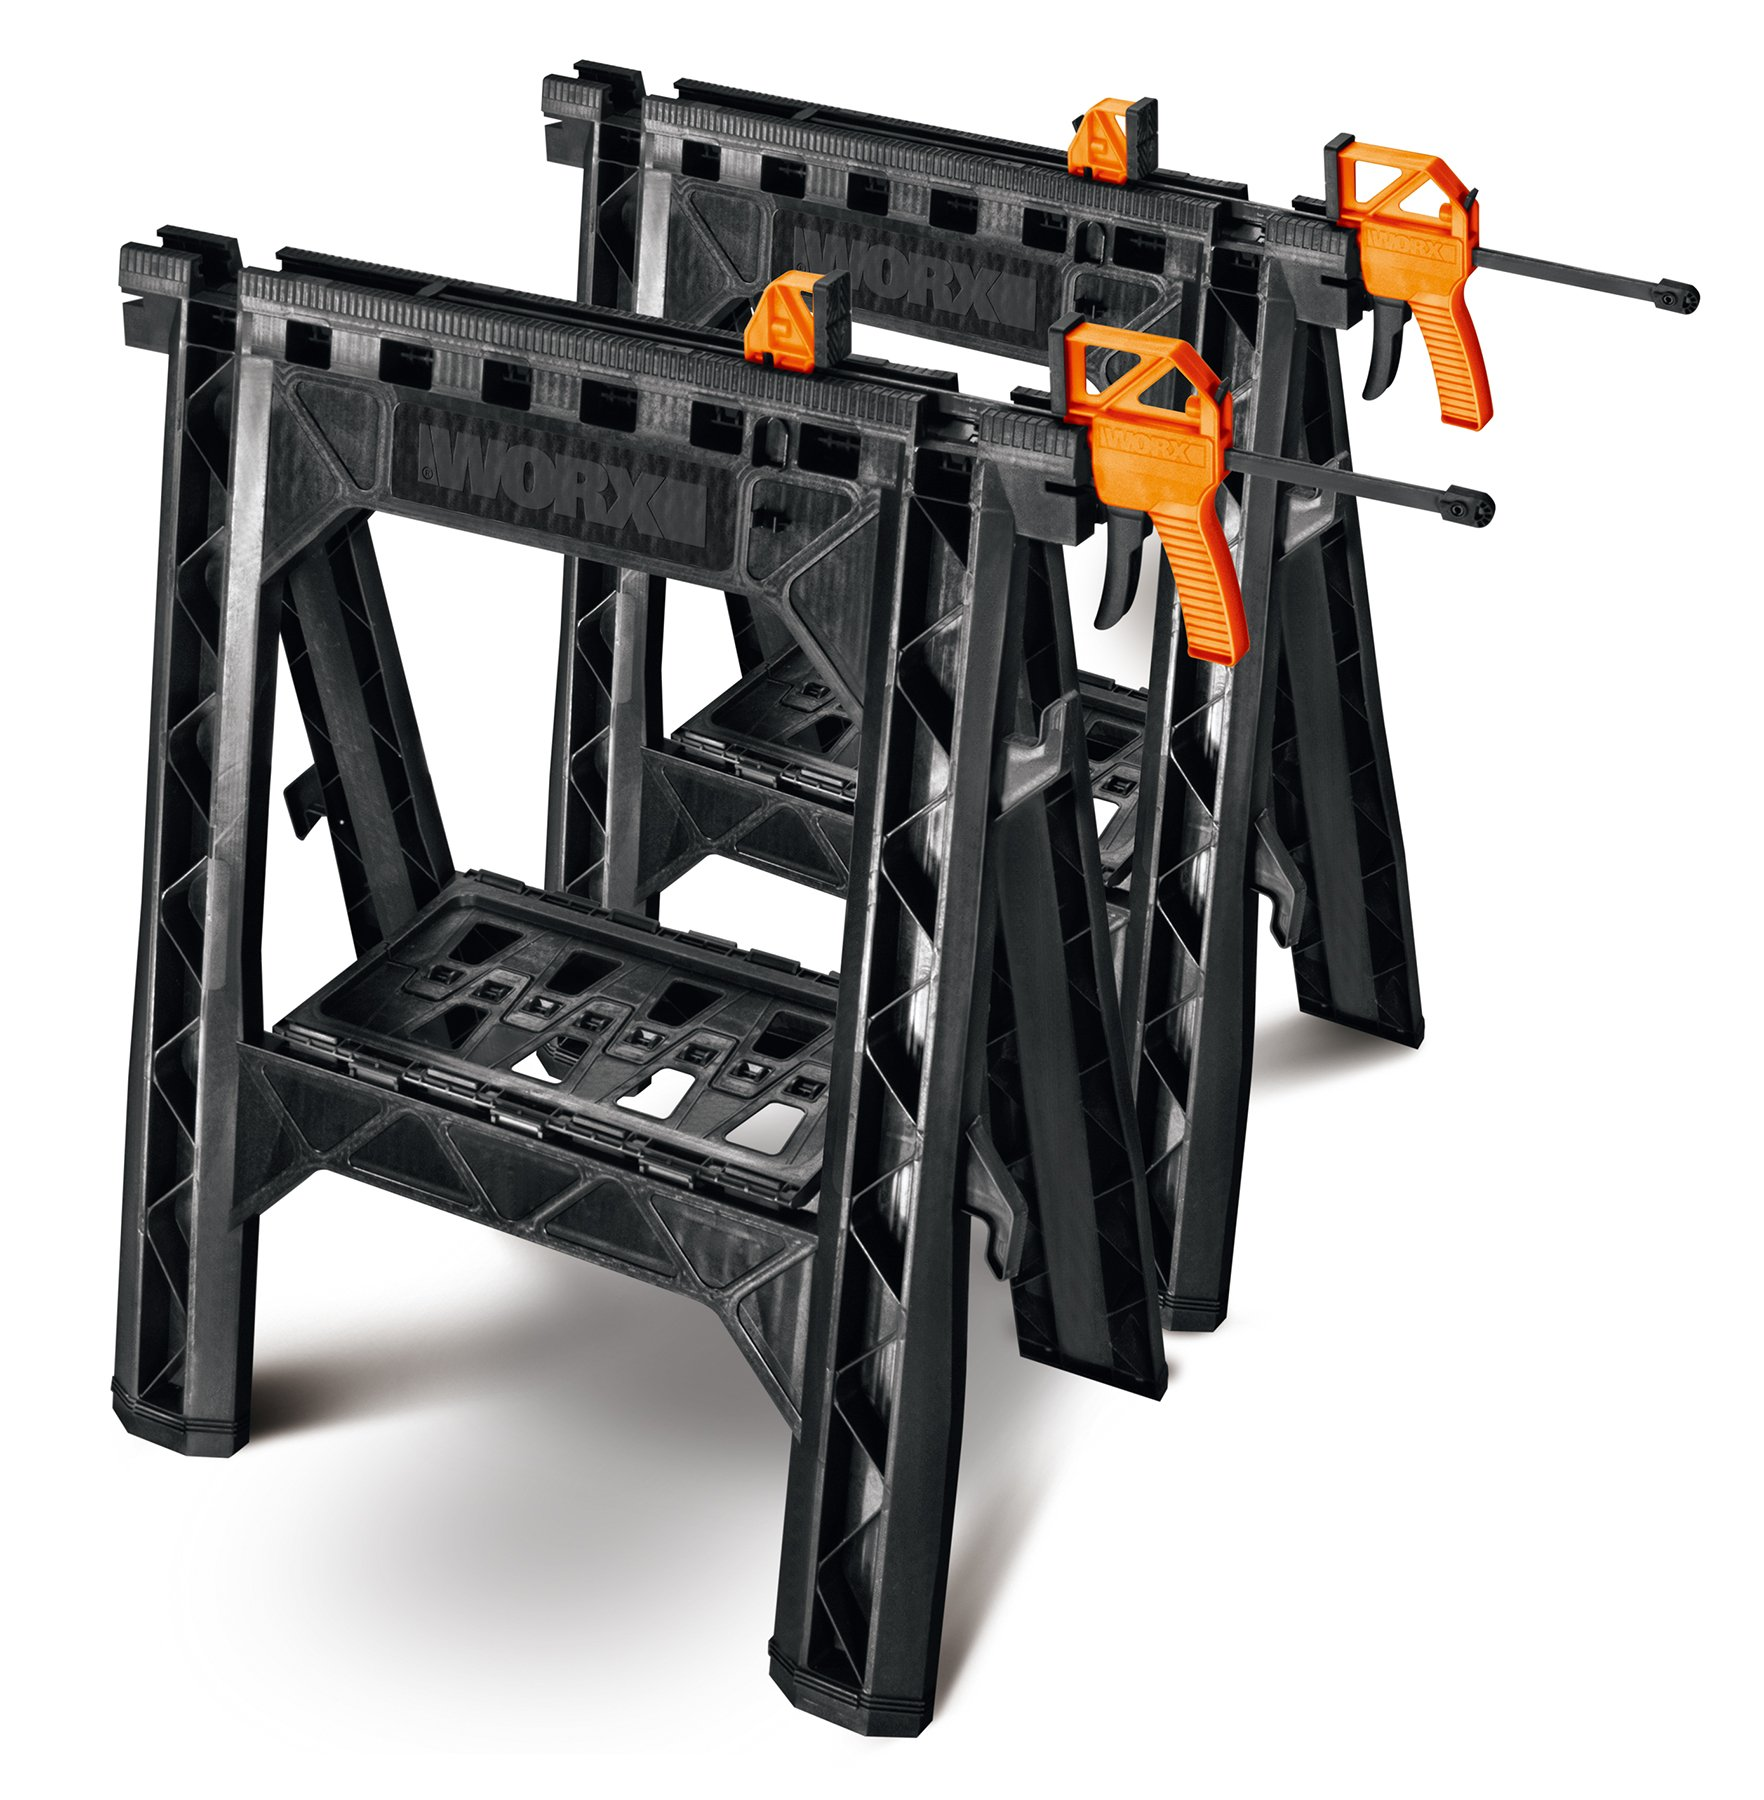 WORX Clamping Sawhorse Pair with Bar Clamps, Built-in Shelf and Cord Hooks – WX065 by Worx